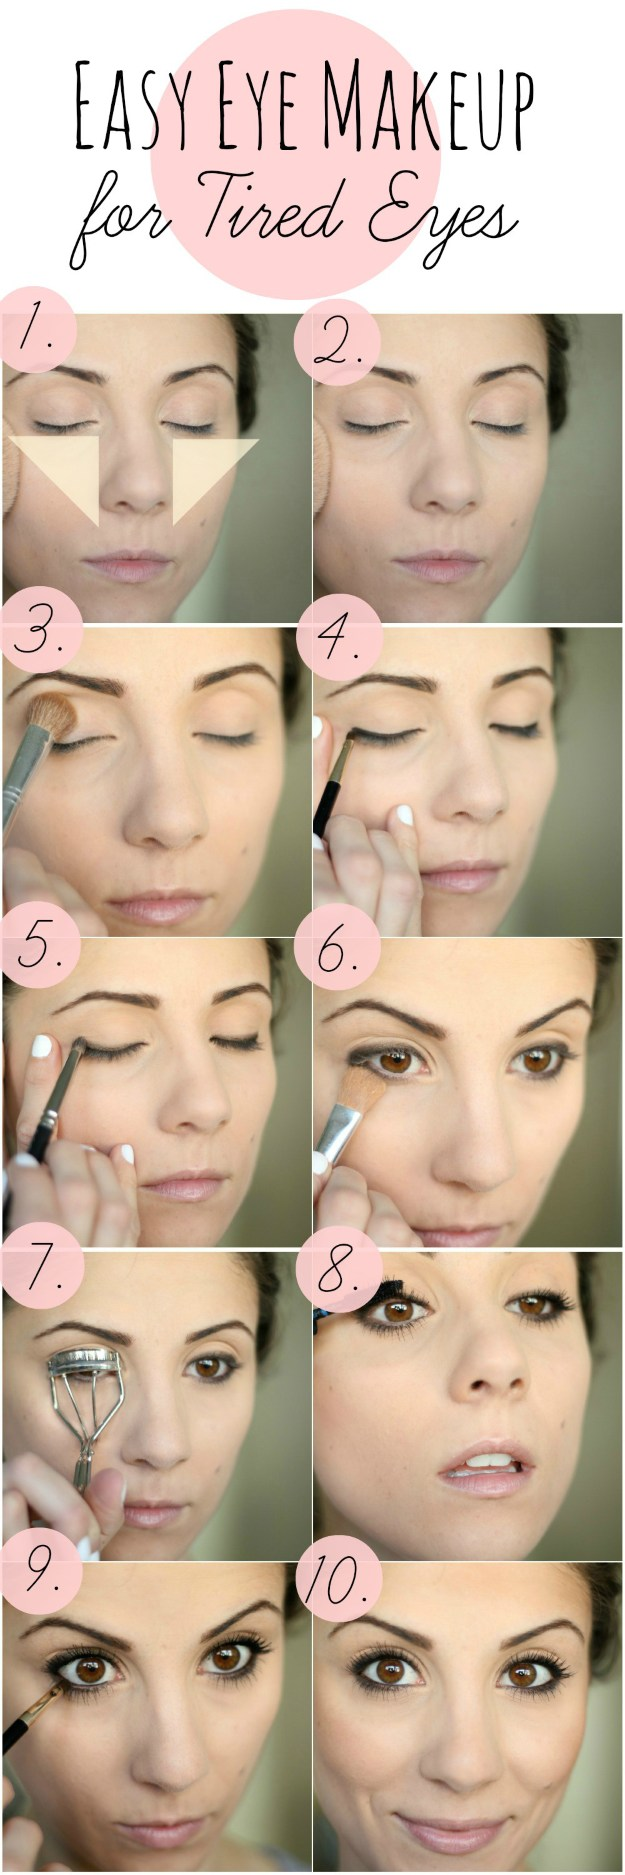 Simple Makeup Tutorial For Work